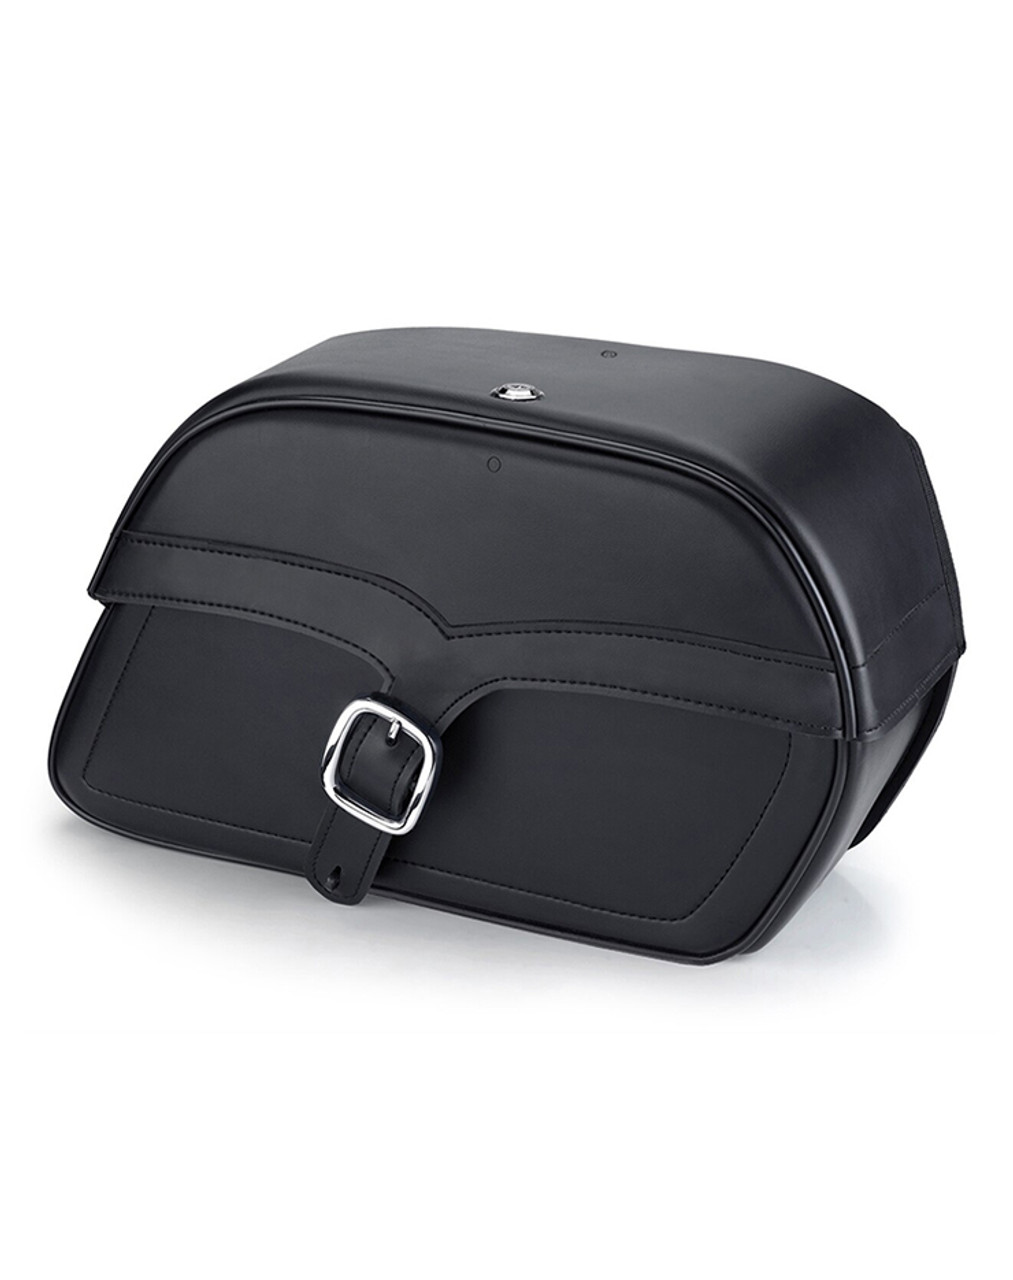 Indian Scout Sixty Charger Single Strap Large Motorcycle Saddlebags Main Bag View